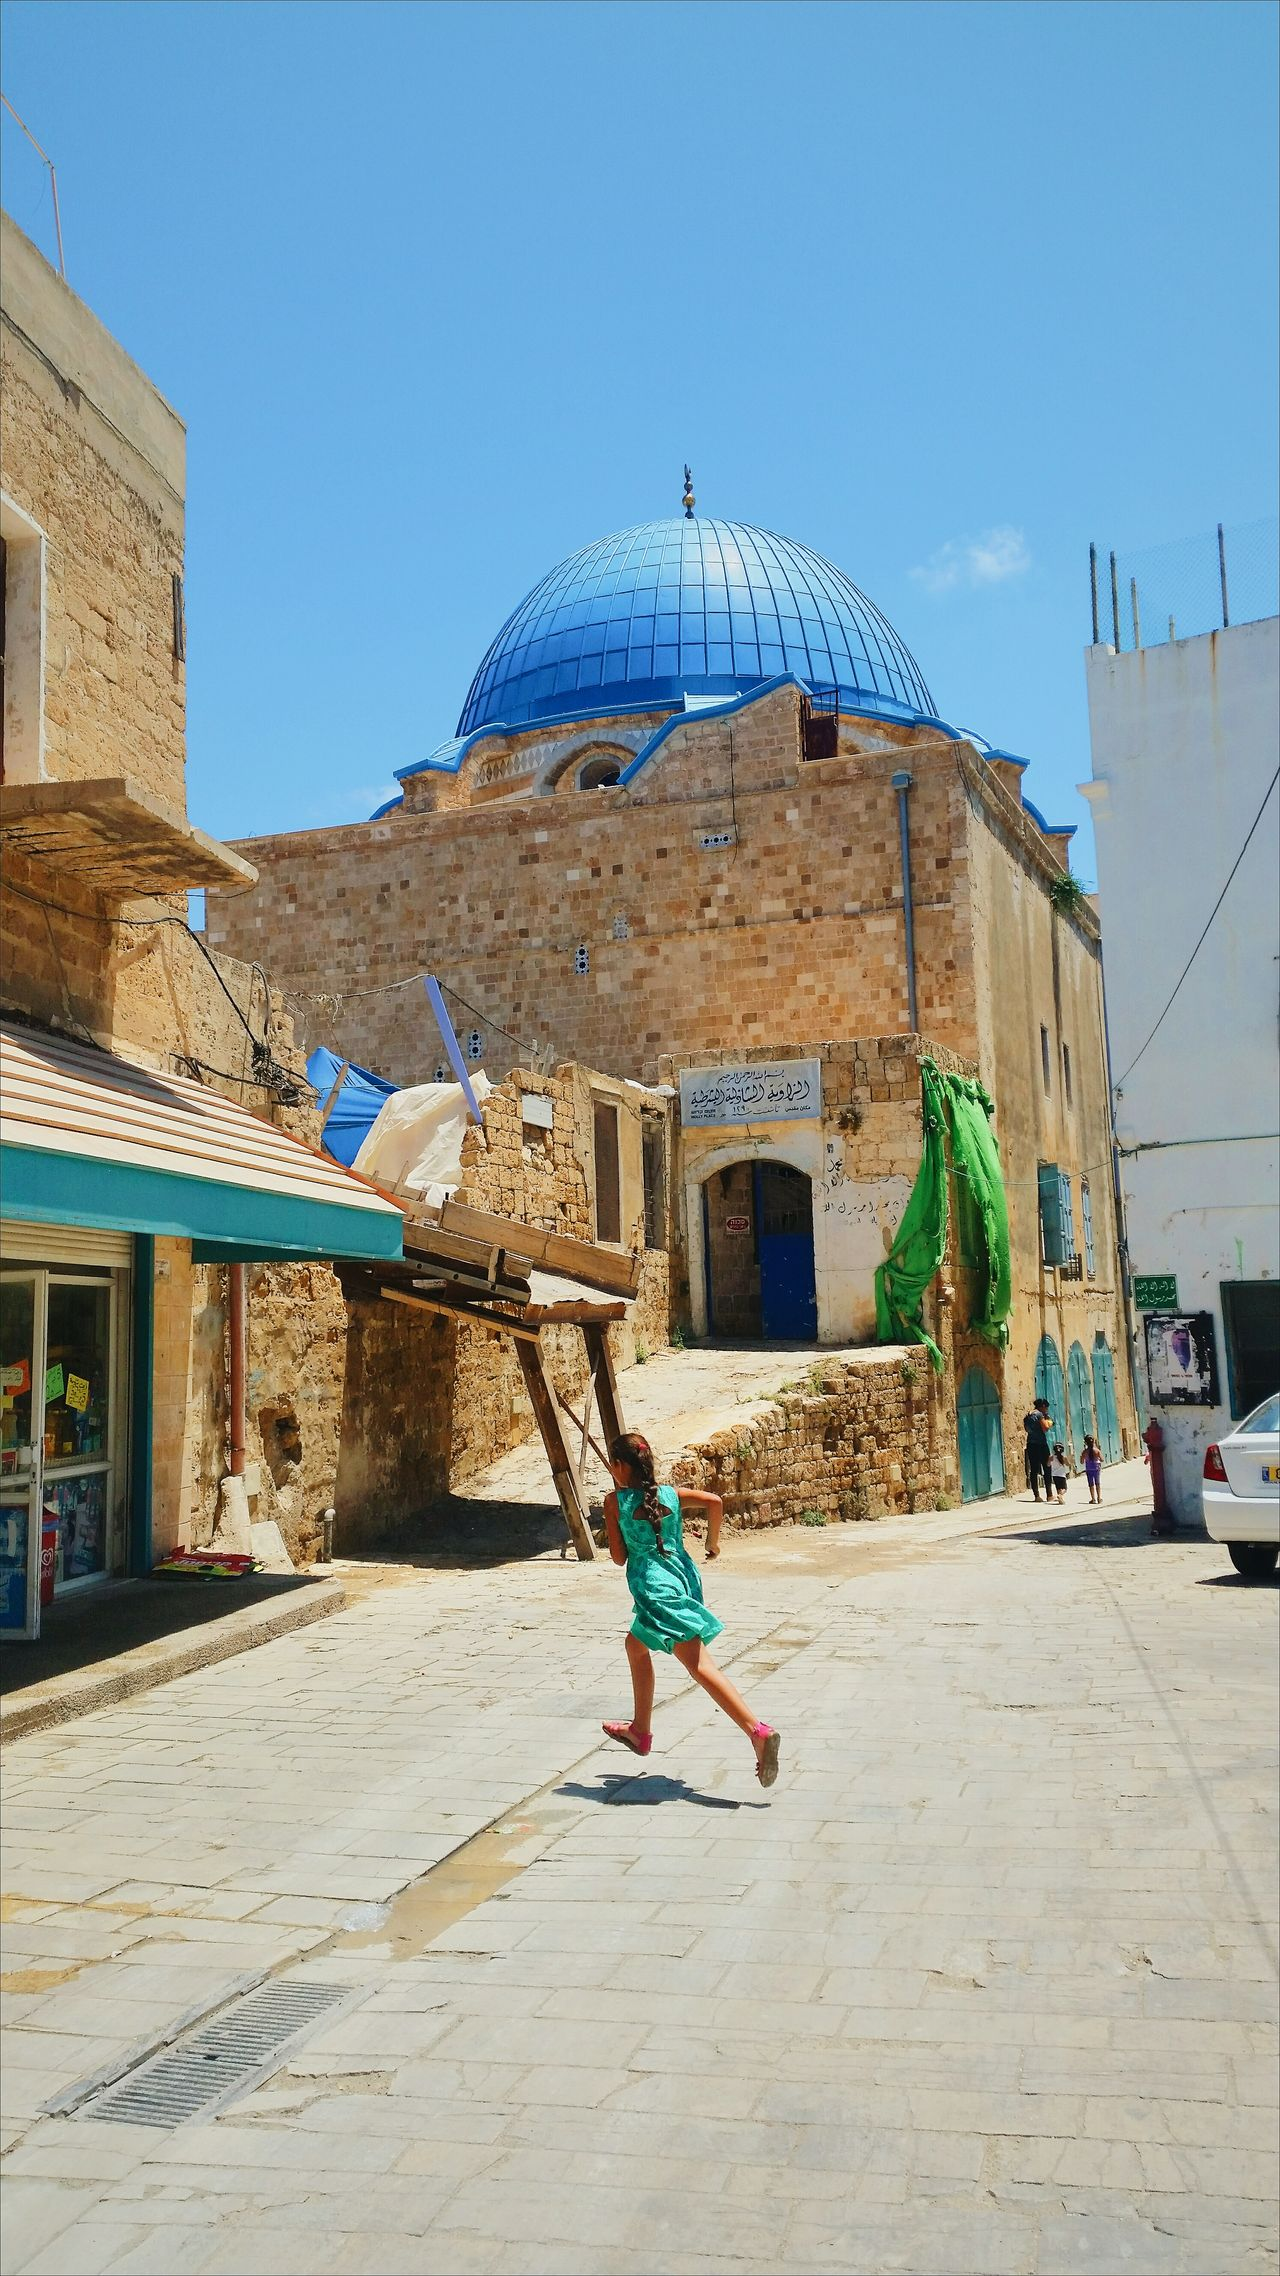 Dome Bluedome Mosque Islamic Akko Israel Akko Muslim Girl Runninggirl Running Child Colours Colors Summer Oldcity Middle East Turquoise Turkish Ottoman Architecture Arabic Architecture Arabic EyEmNewHere